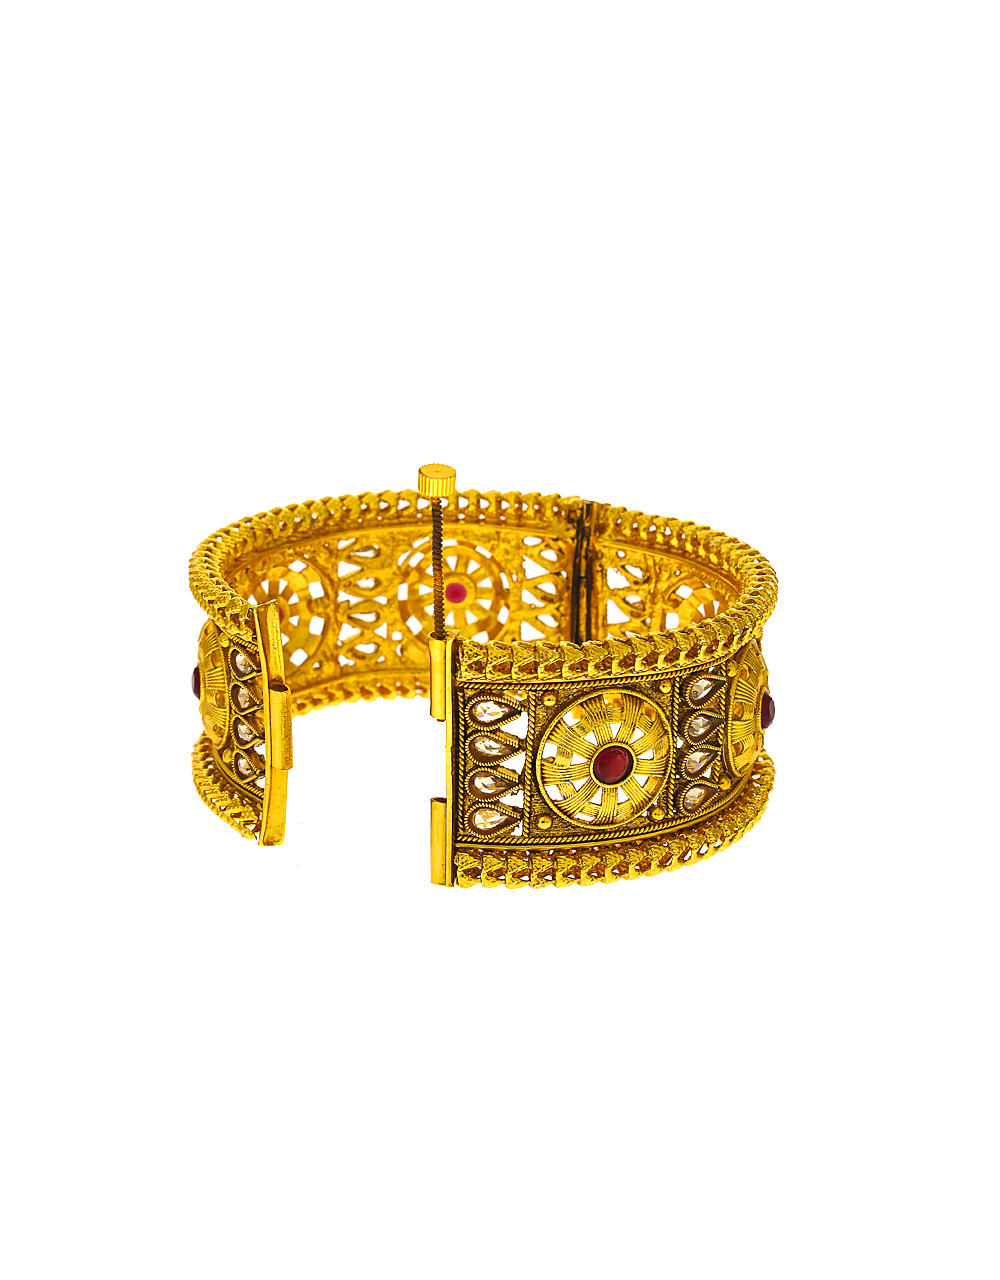 Very Classy Maroon Colour Golden Finish Stone Studded Traditional Bangles.